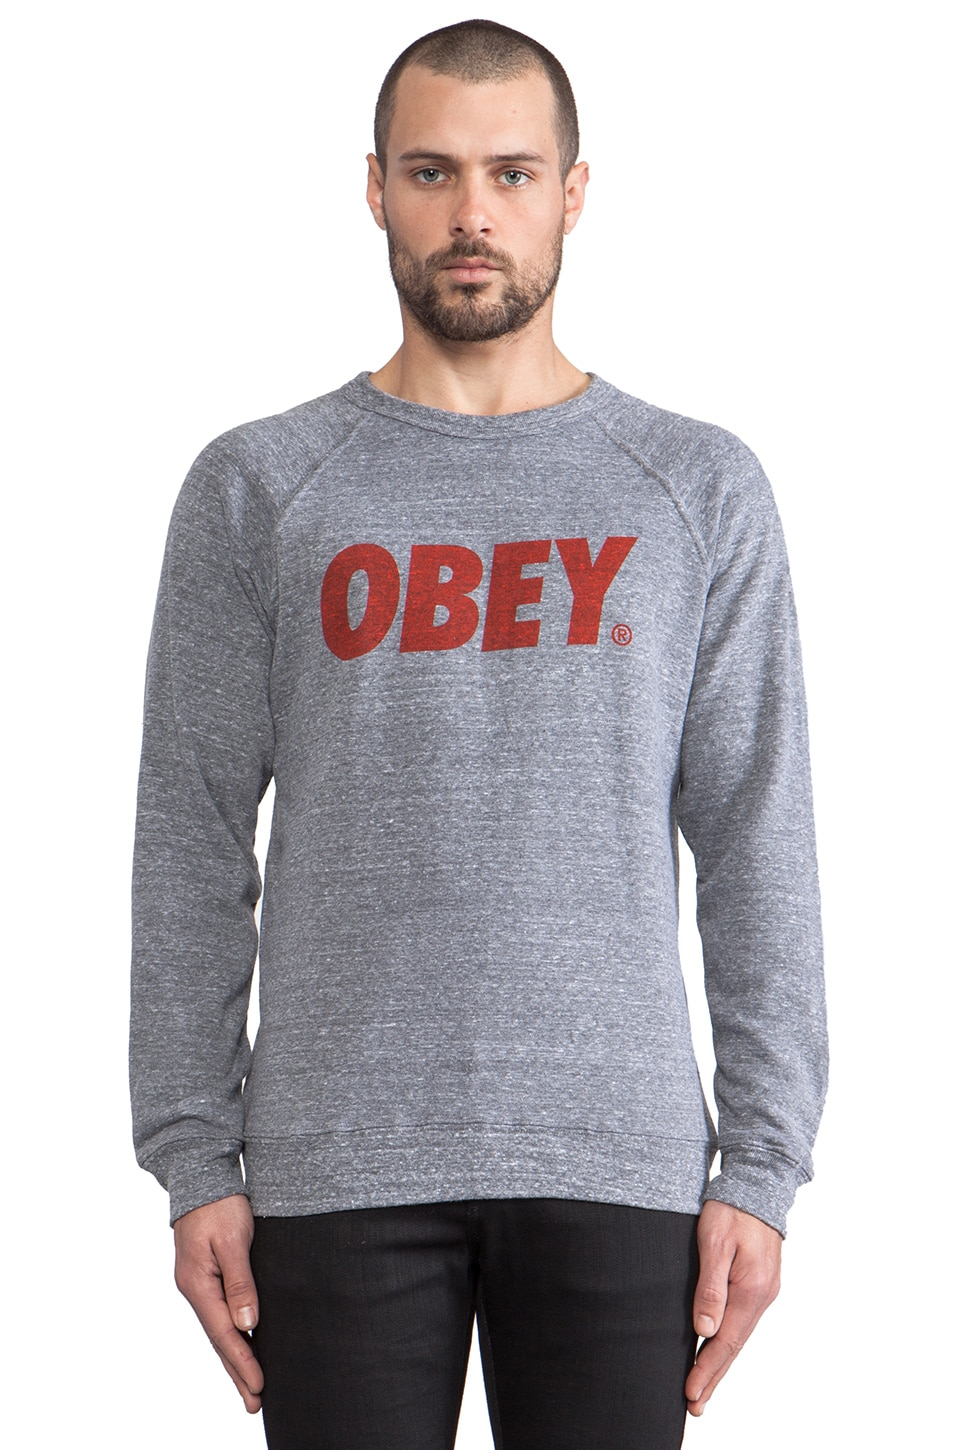 Obey Standard Issue Collection Pullover Sweatershirt en Gris Chiné